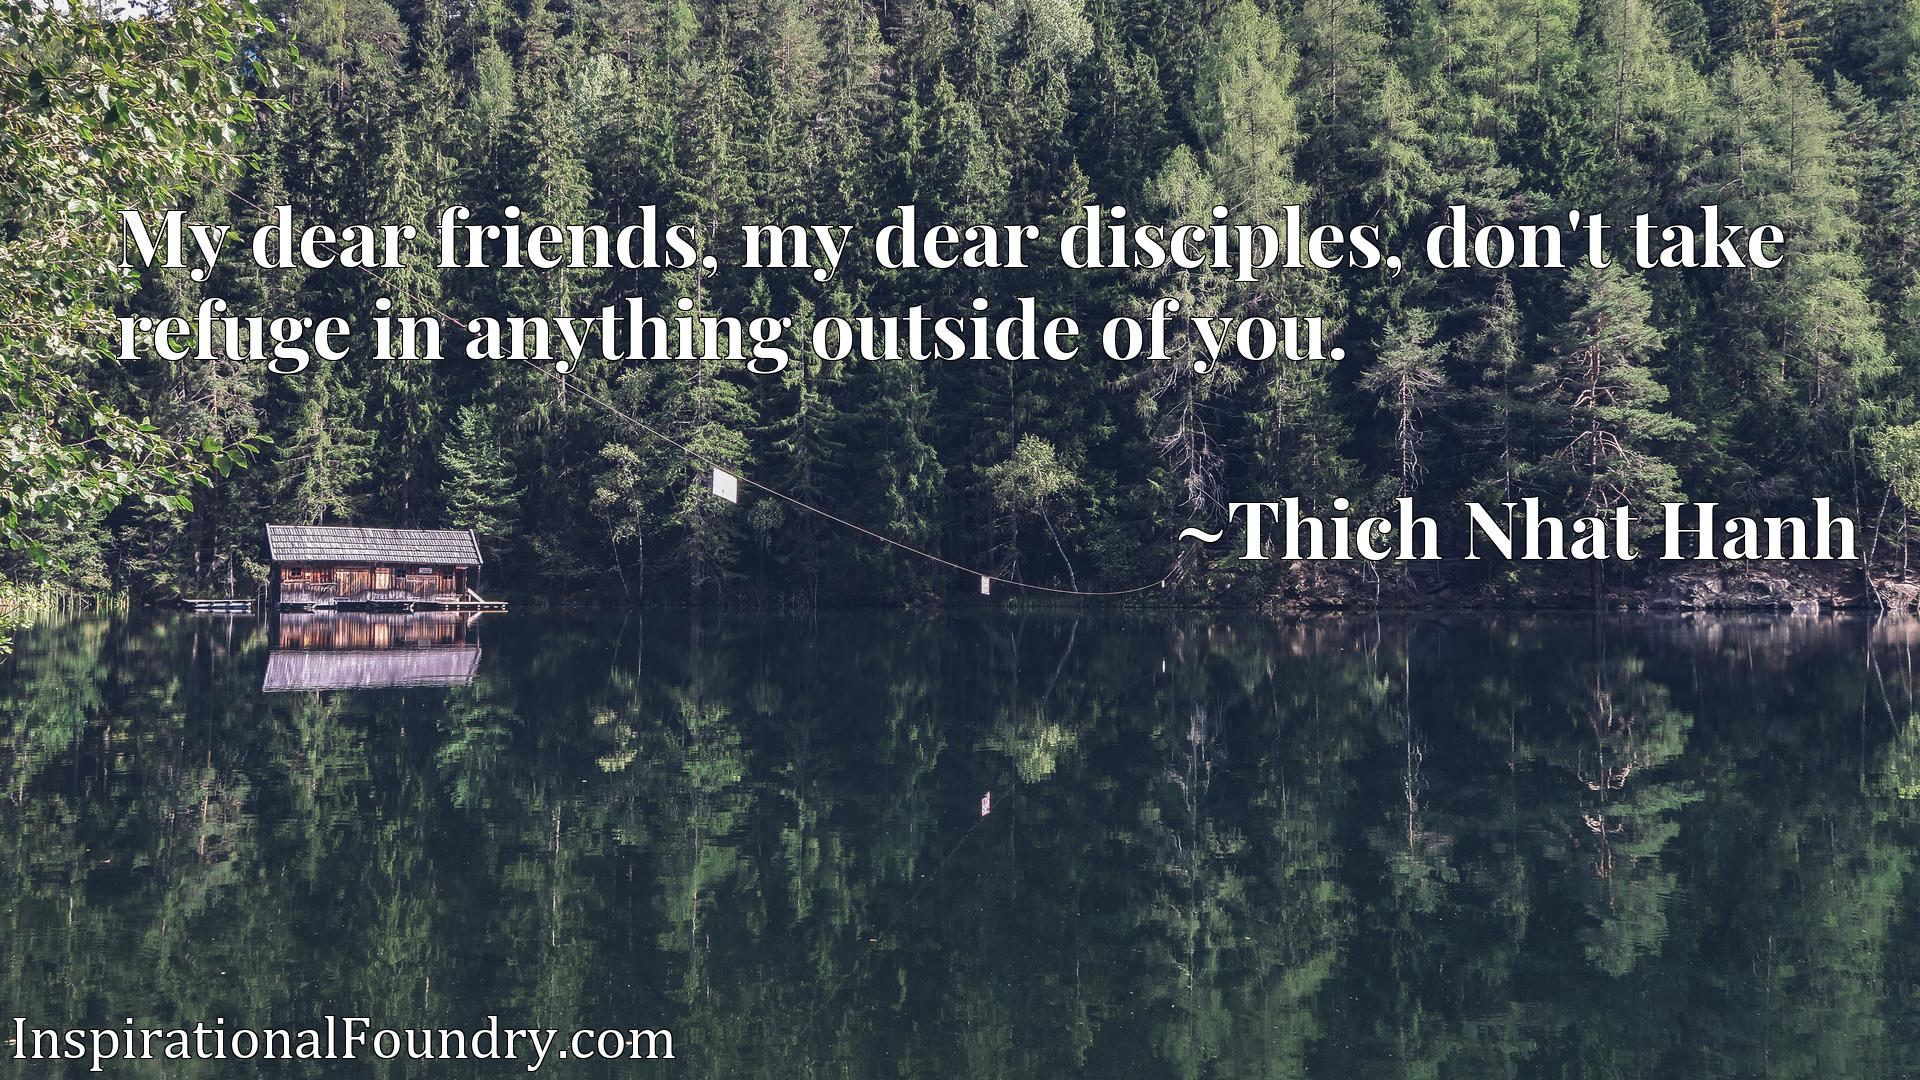 My dear friends, my dear disciples, don't take refuge in anything outside of you.